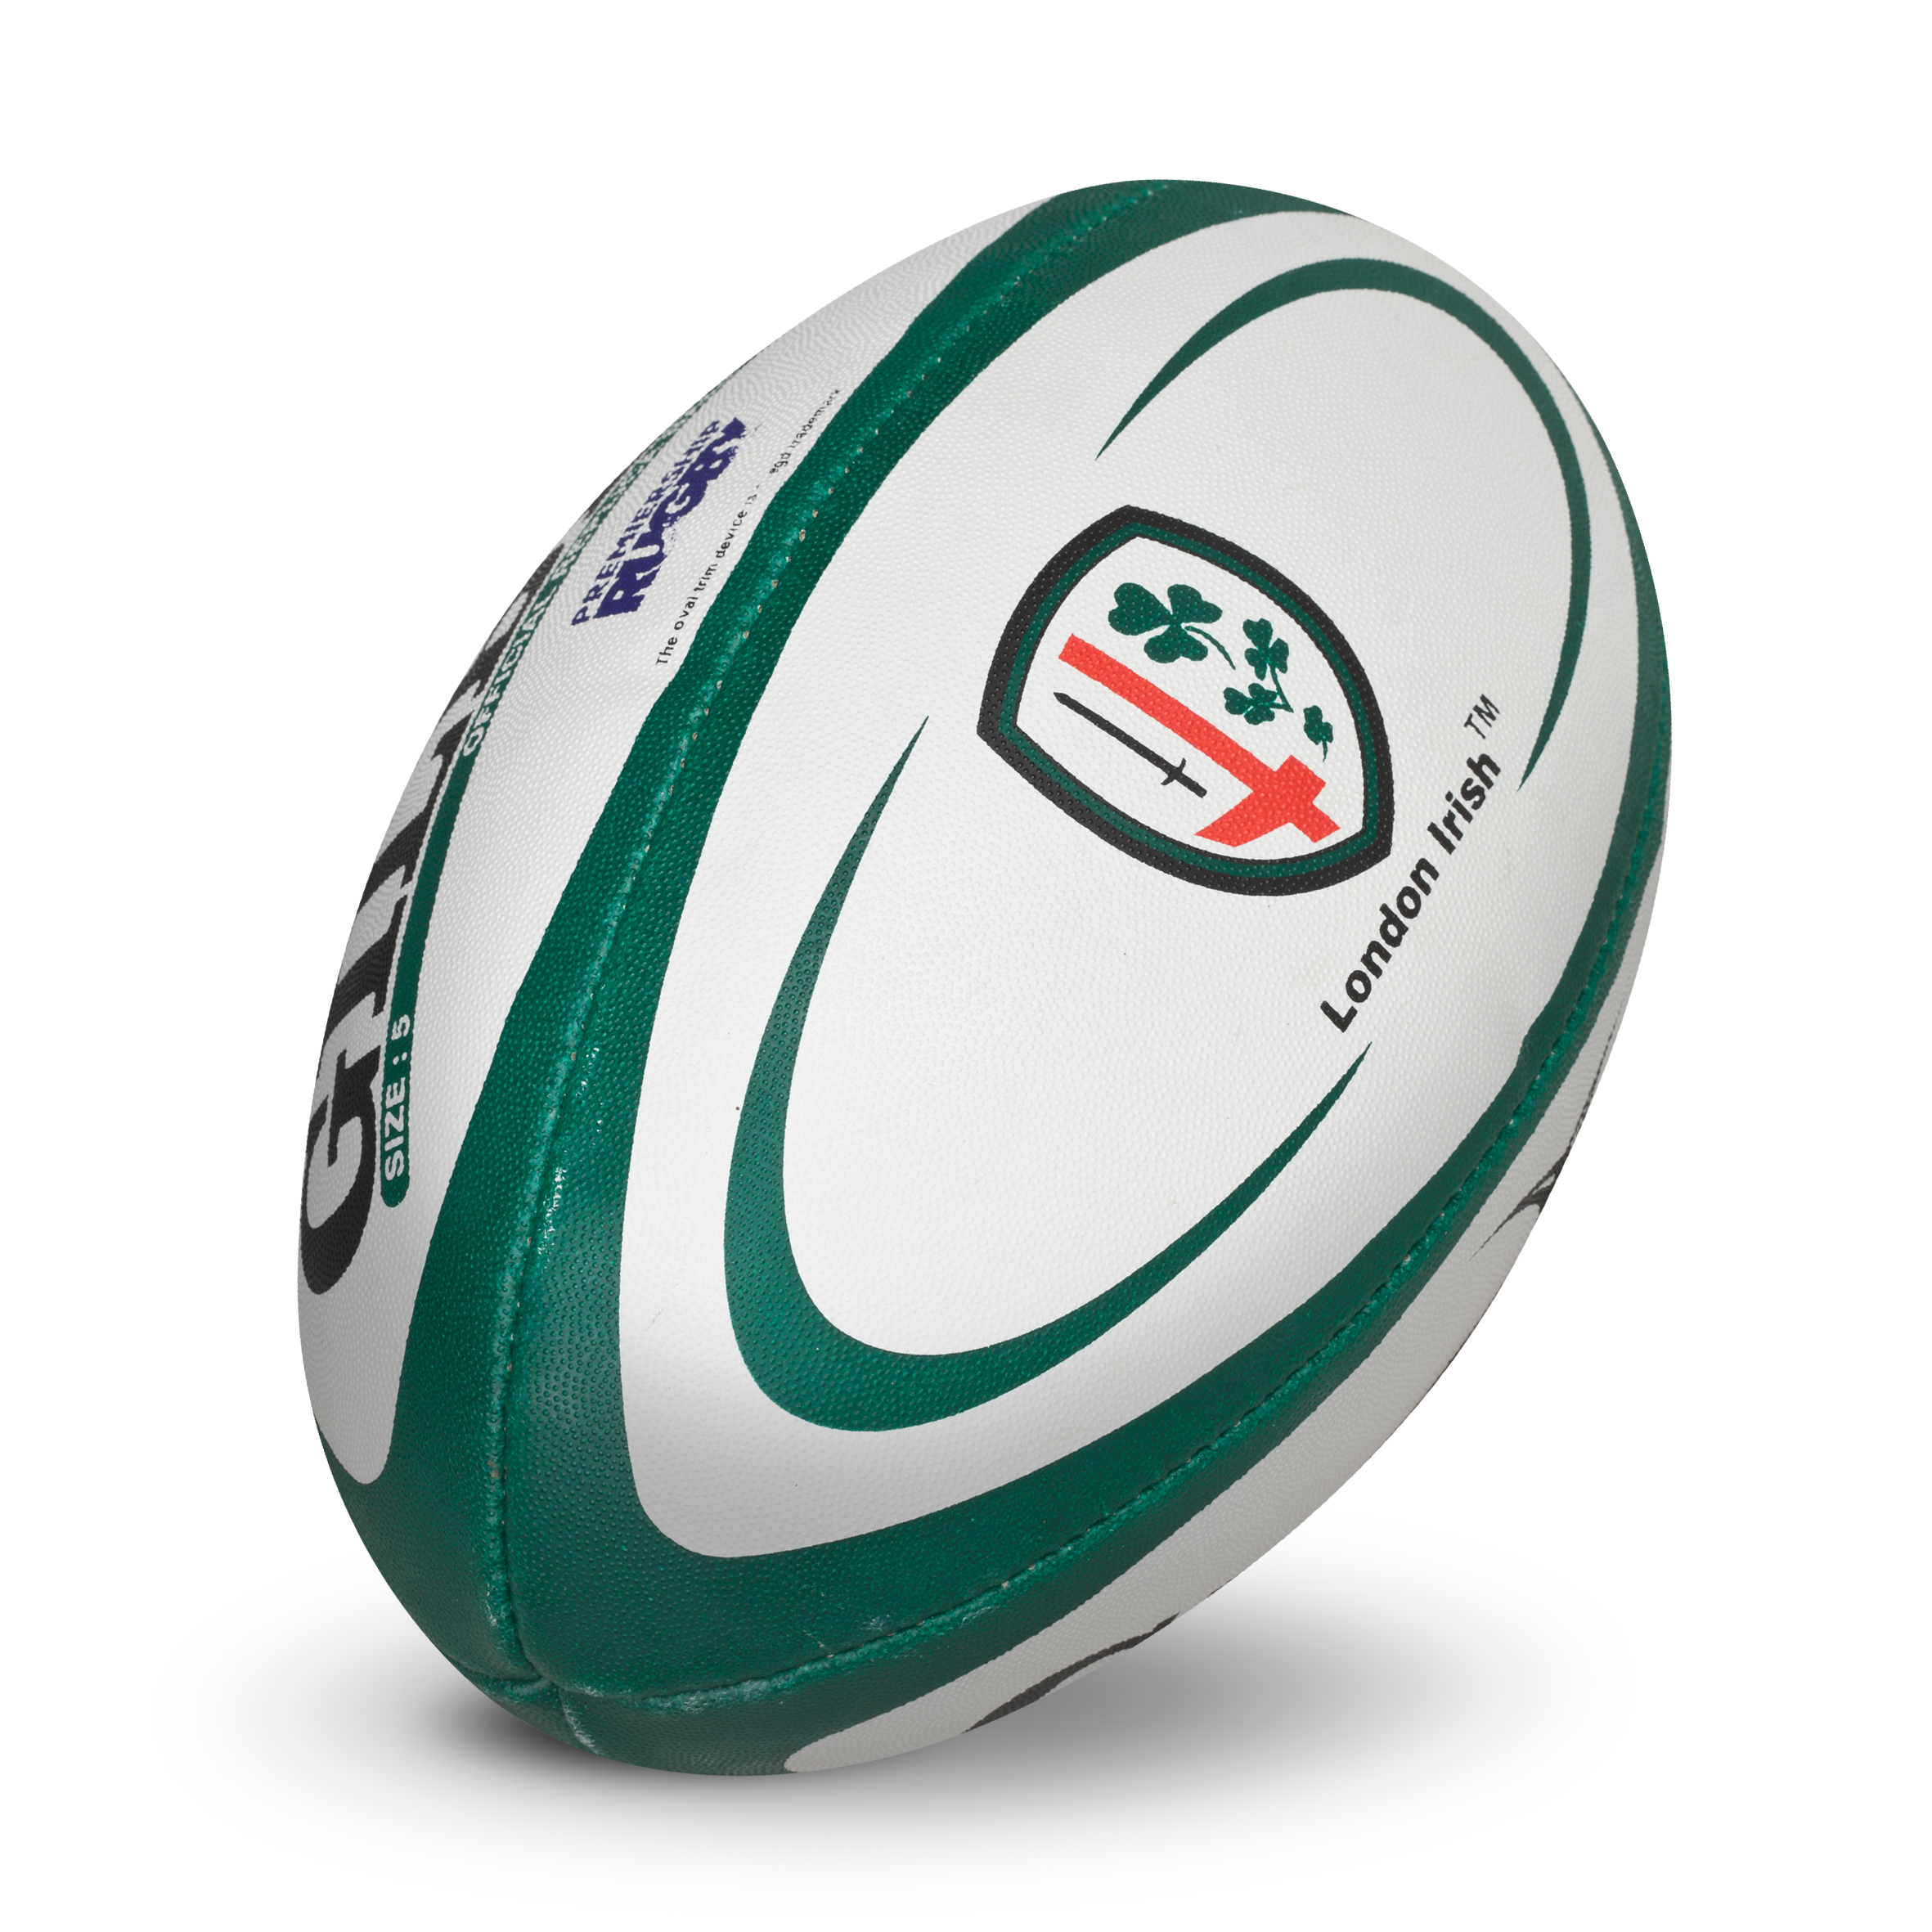 Gilbert Replica Rugby Ball - Size 5 - White/Green